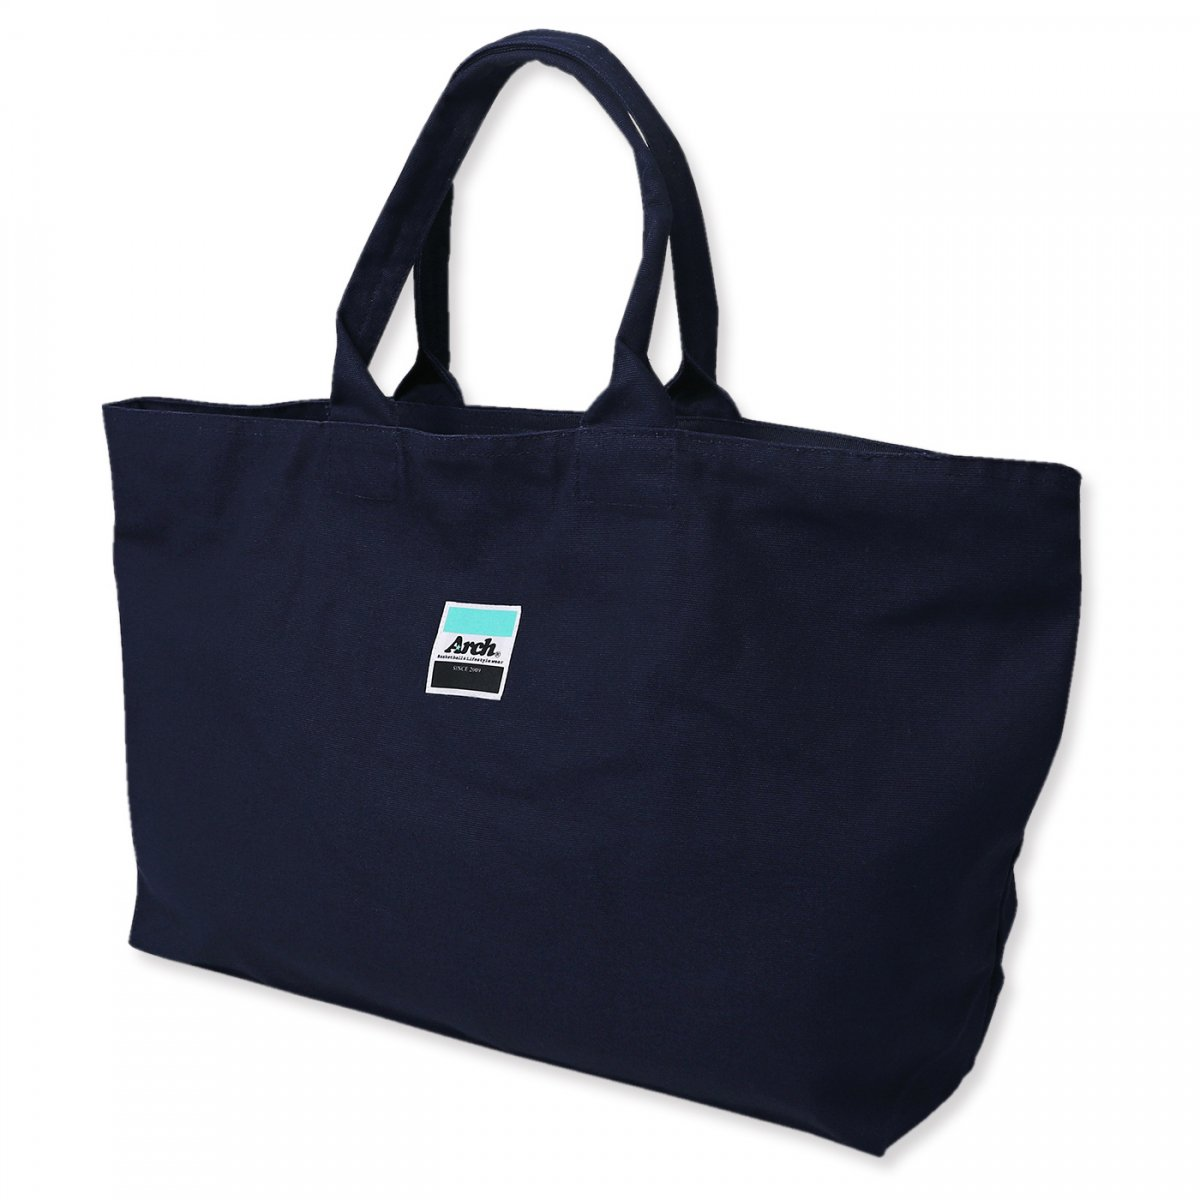 BB10 tote bag【navy】